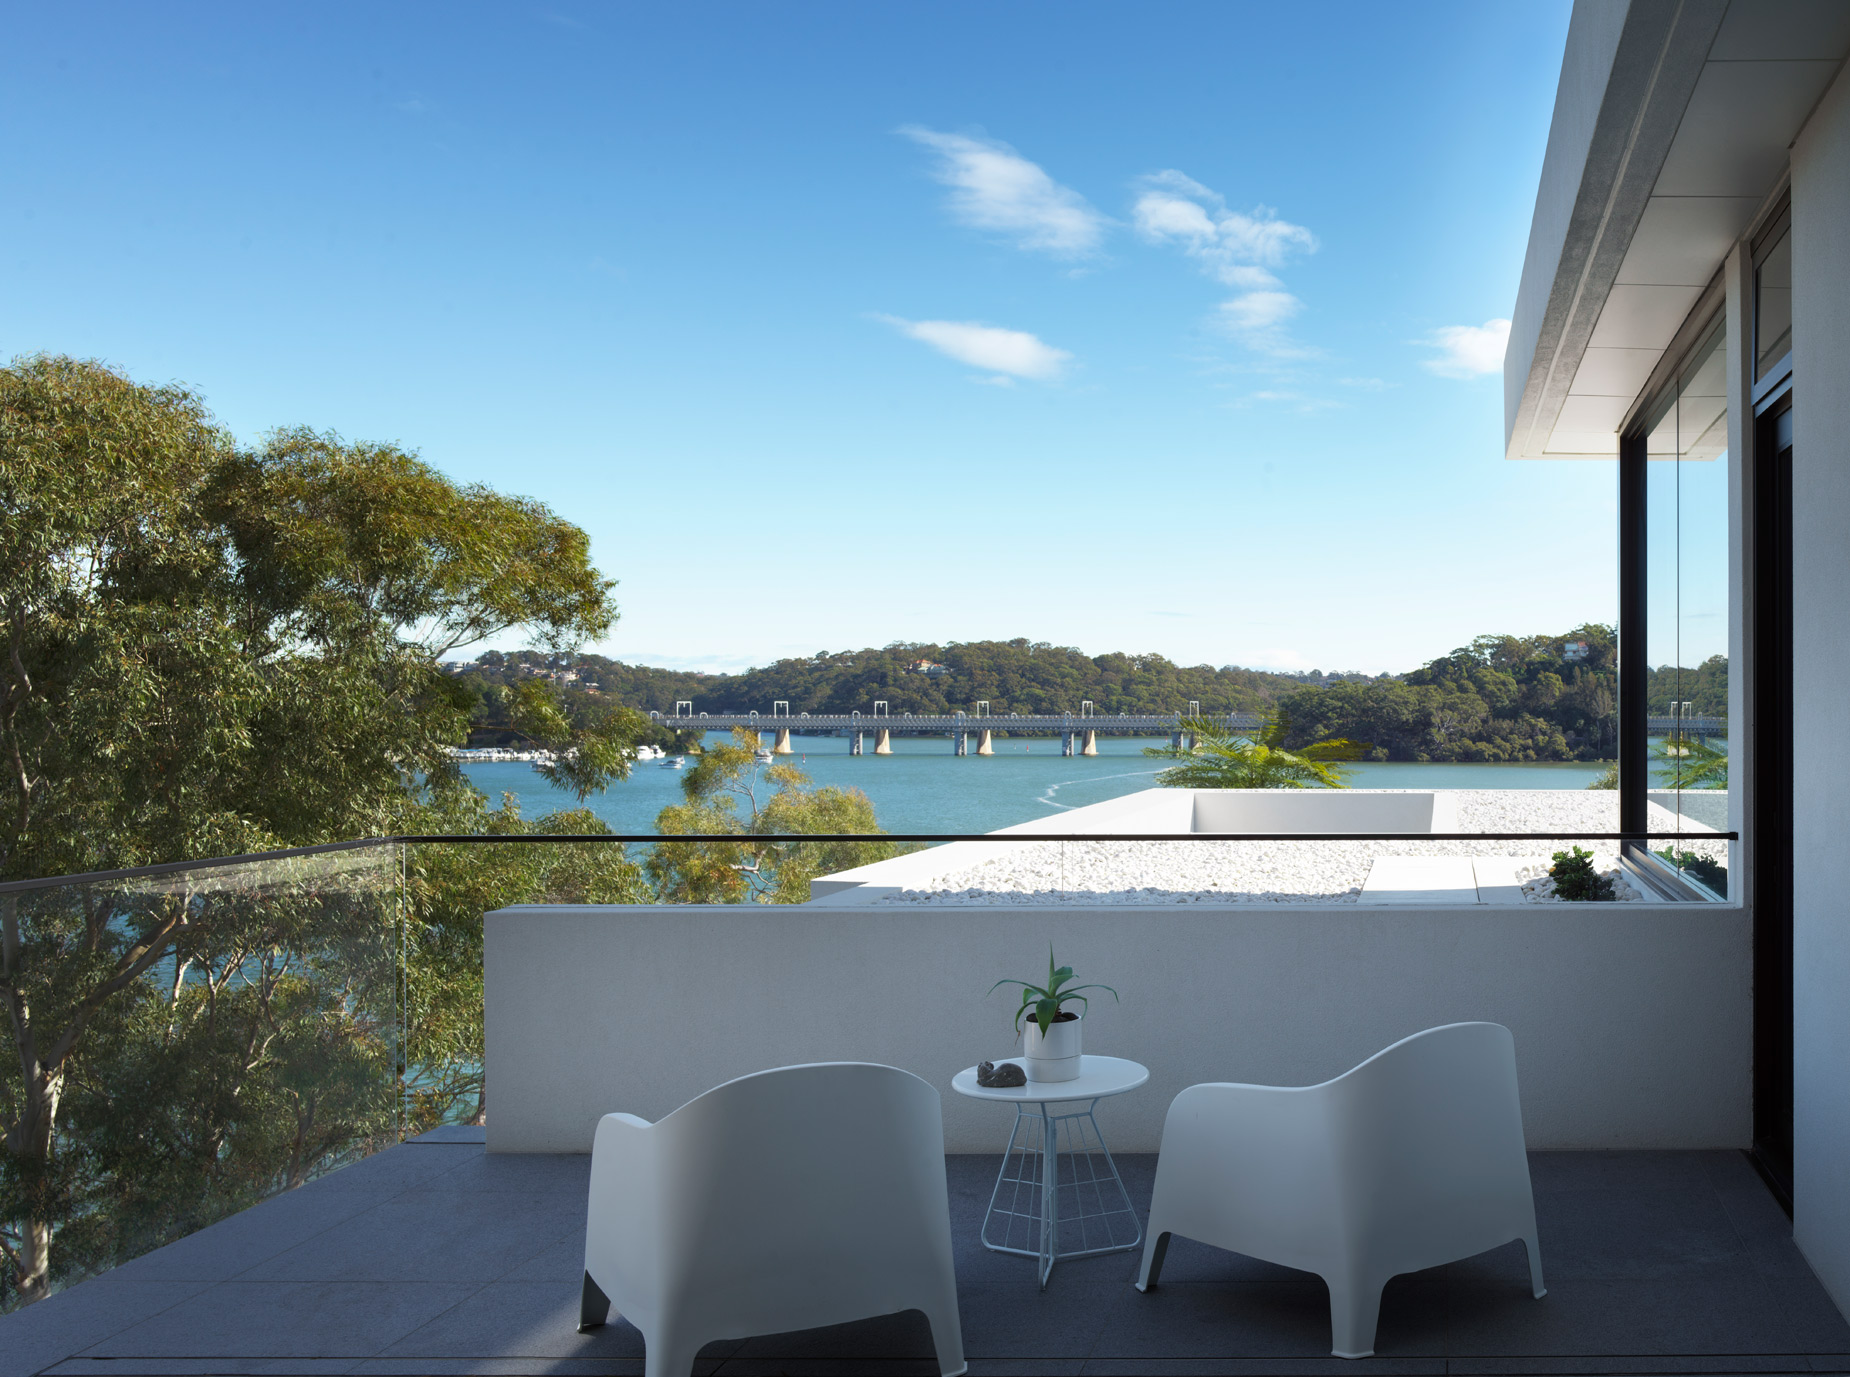 luke-butterly-2020-Oyster-Bay-House-by-Couvaras-Architecture-Sydney-NSW-9